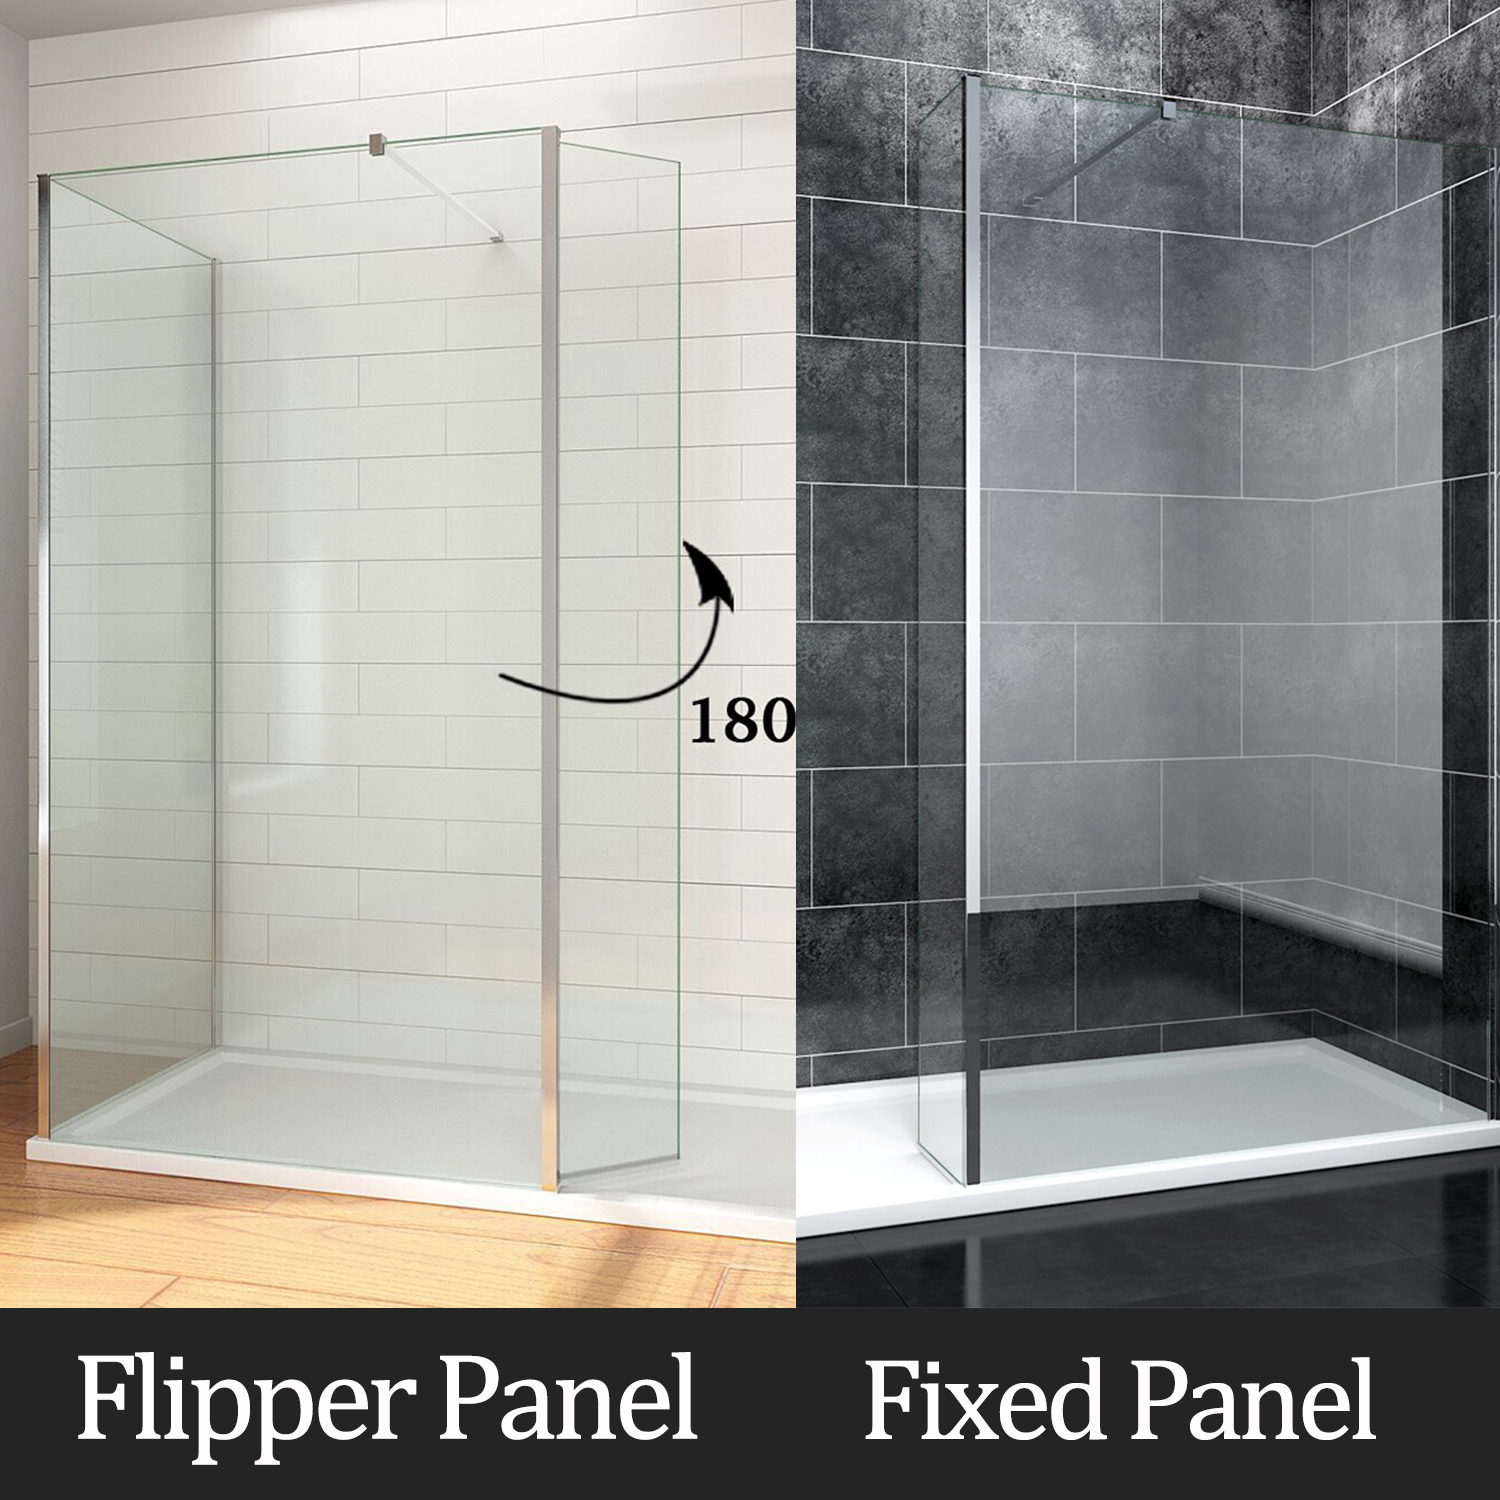 Walk In Shower With Flipper Panel.Details About Walk In Shower Enclosure Wet Room Screen Flipper Fixed Glass Panel Tray Waste